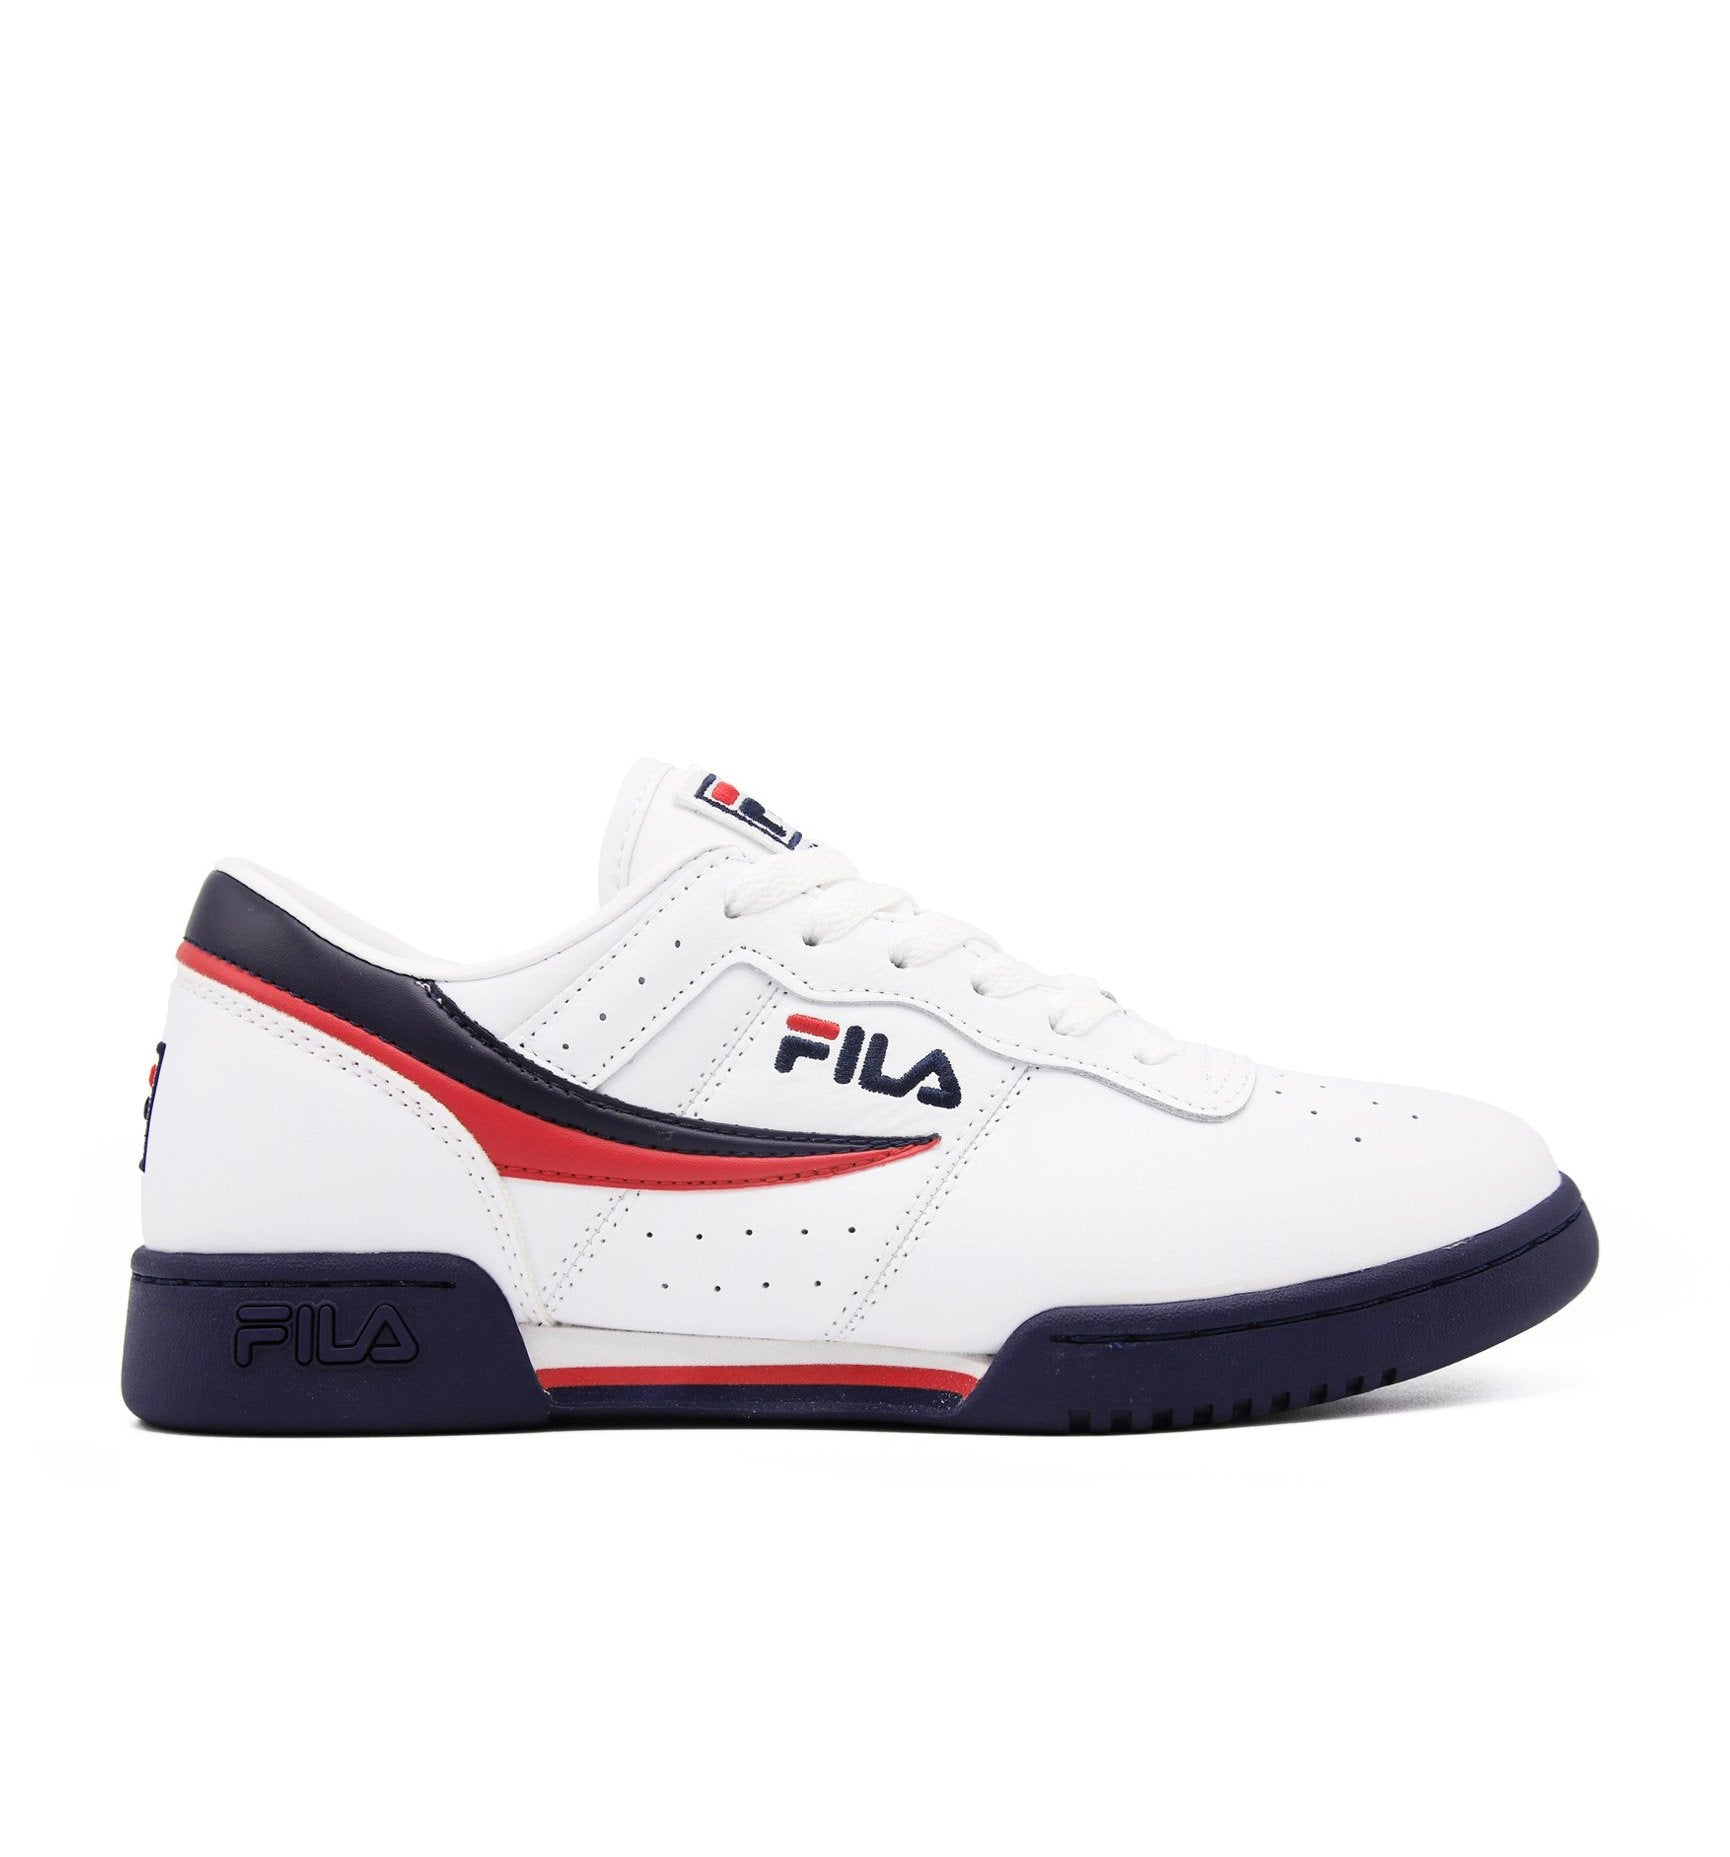 FILA Original Fitness Low - White